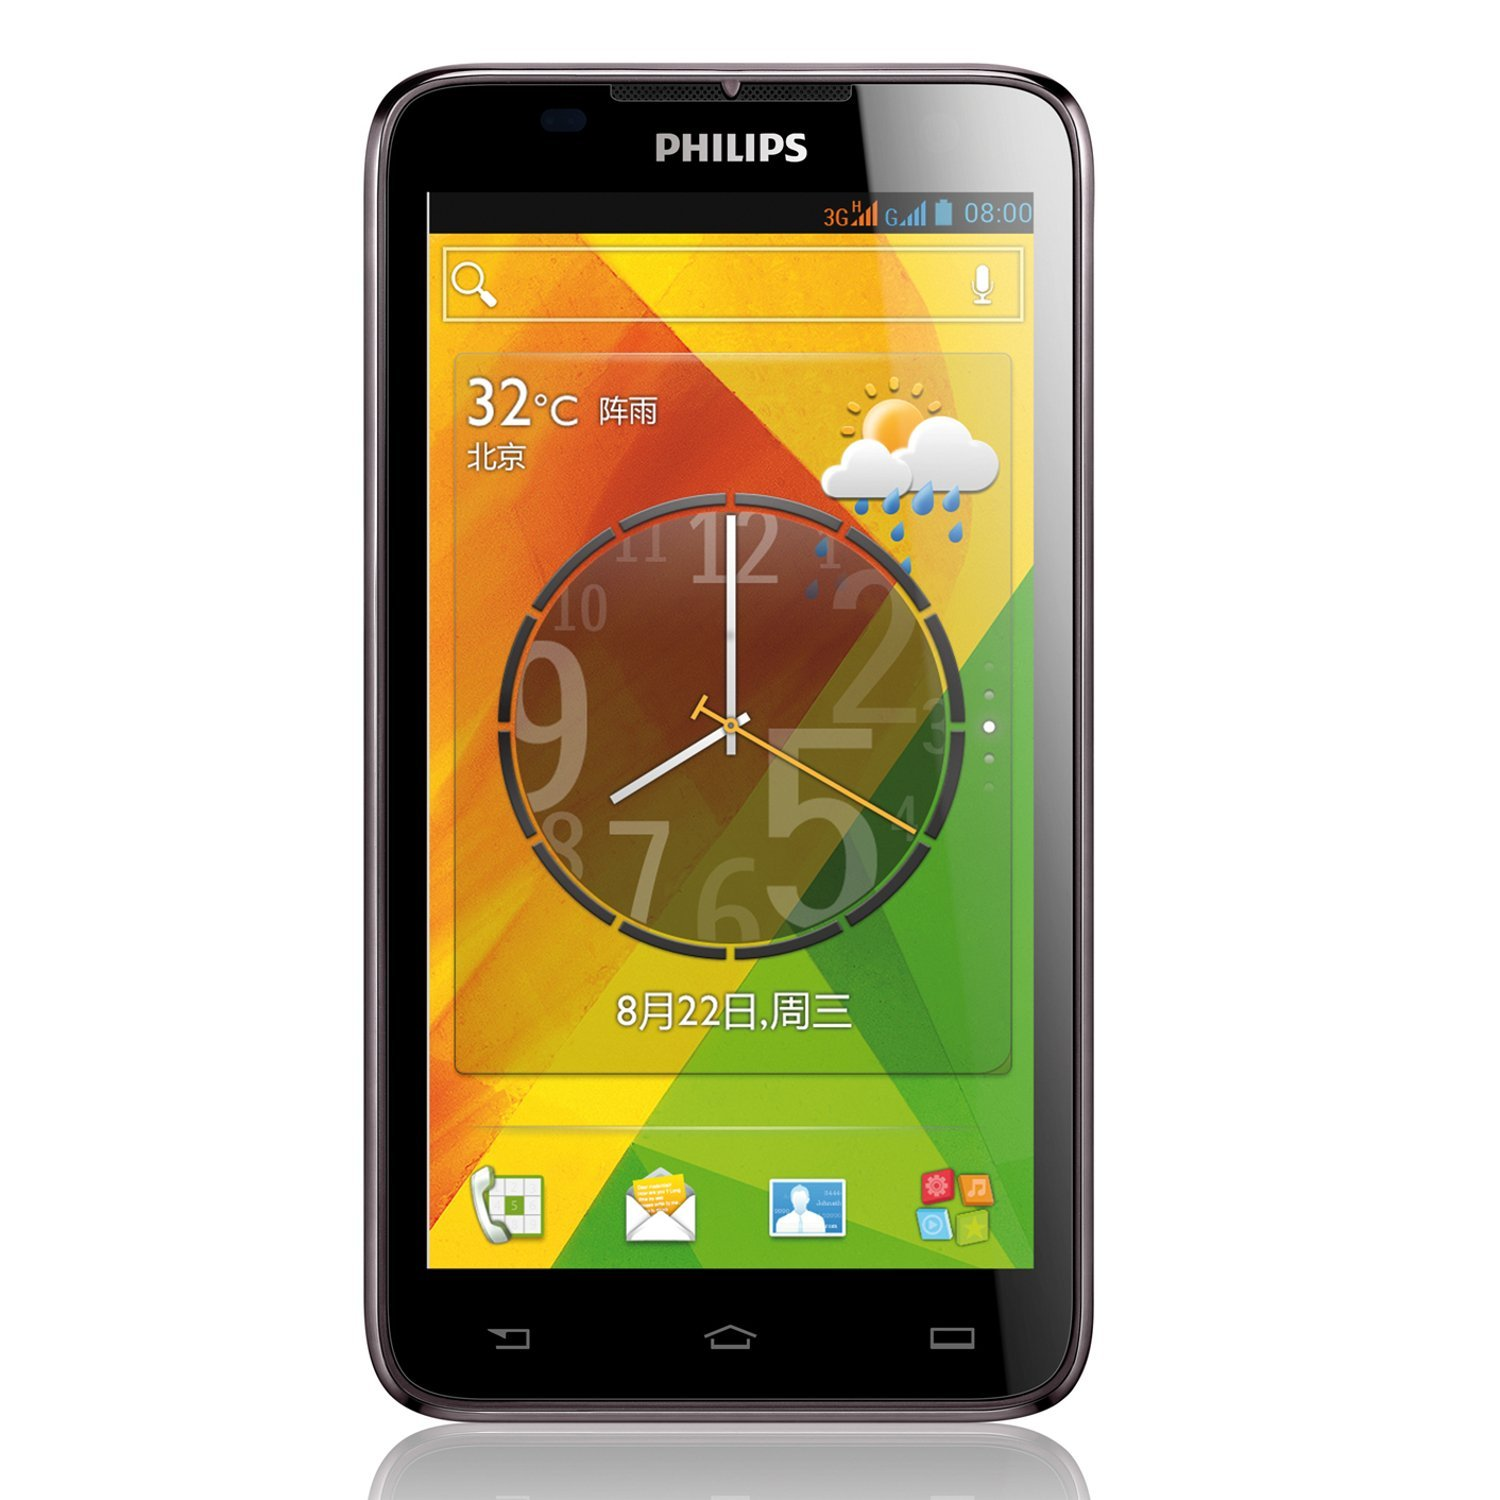 Mobile Communications PHILIPS Philips W8355 3G smartphone (black) dual card dual standby WCDMA / GSM